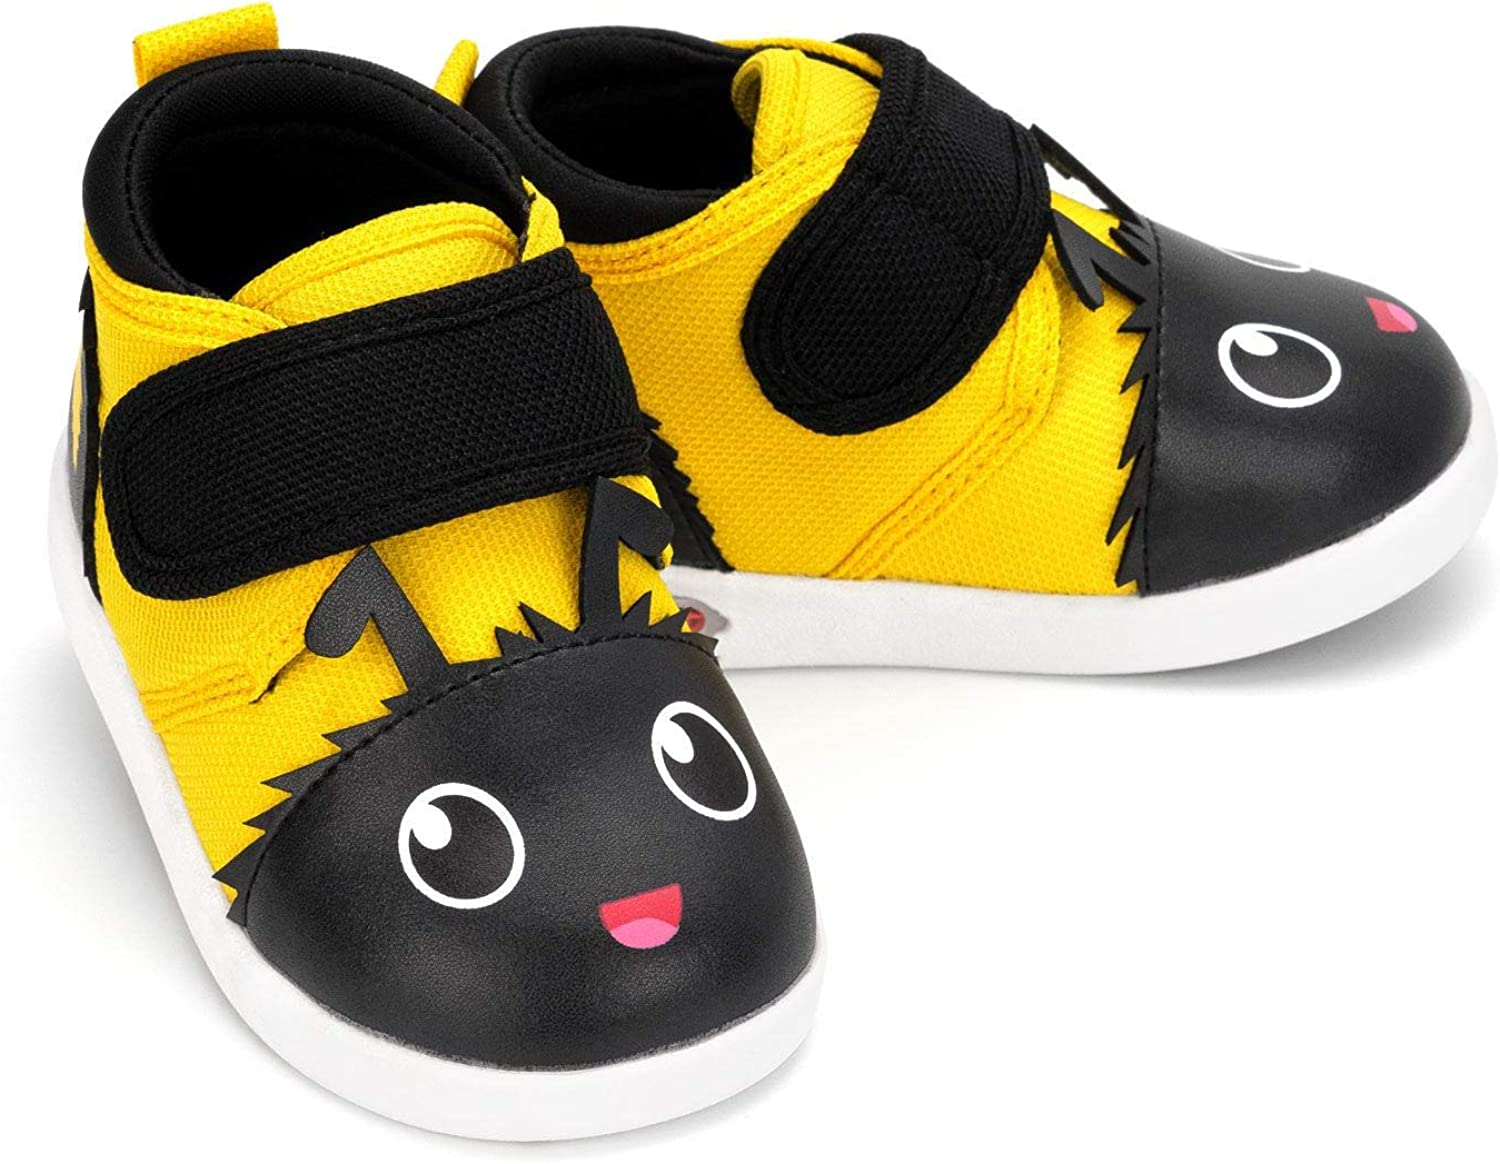 Ikiki Squeaky Shoes For Toddlers With On Off Squeaker Switch Sneakers